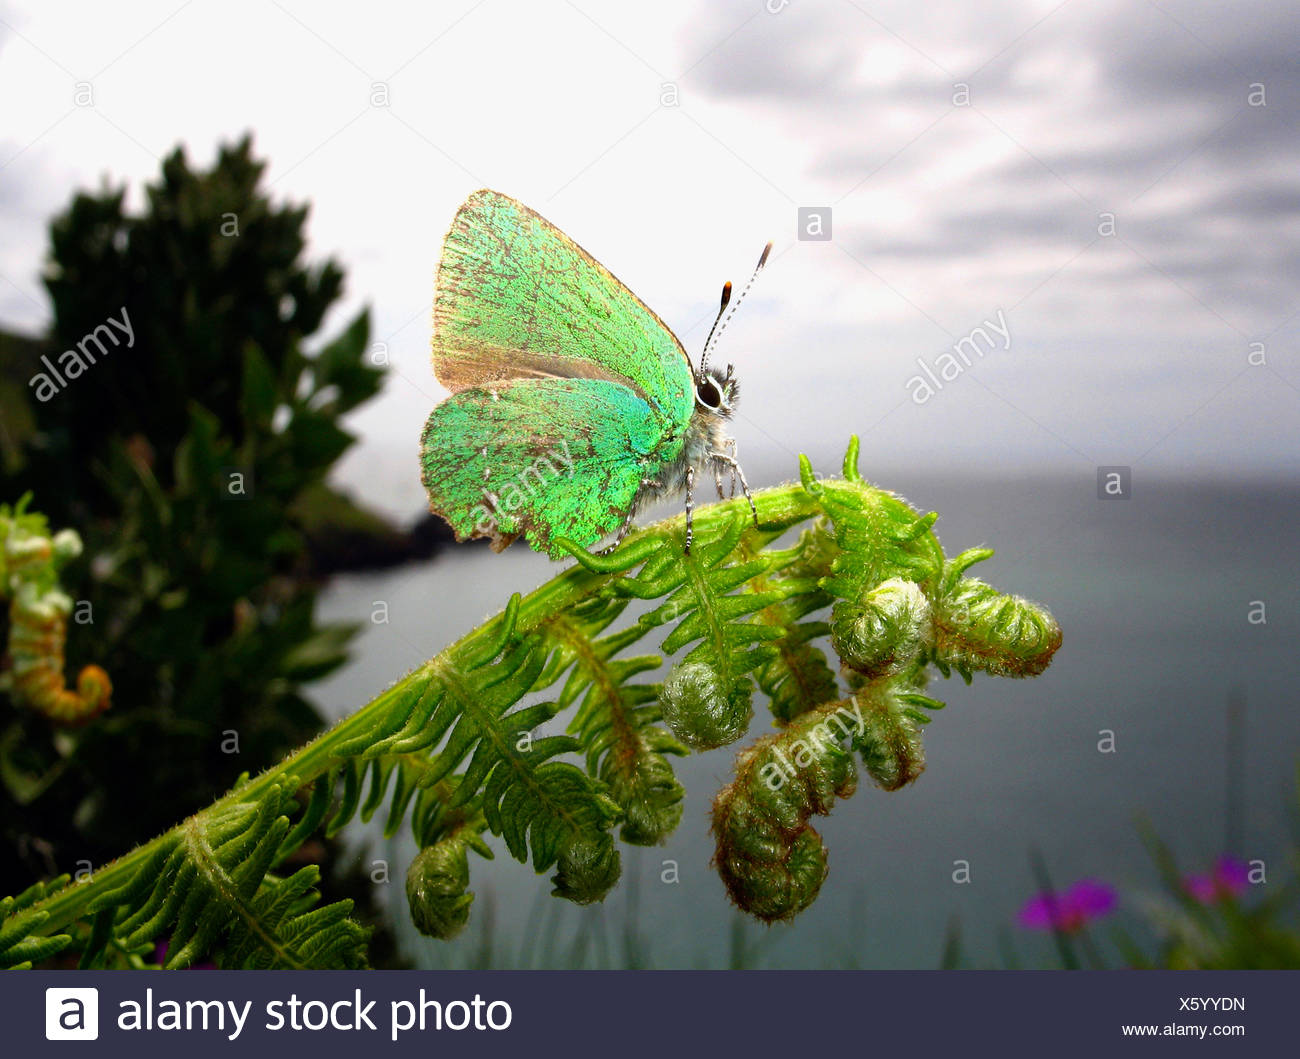 Green Hairstreak Butterfly perched on a fern, Devon Coast, UK. - Stock Image